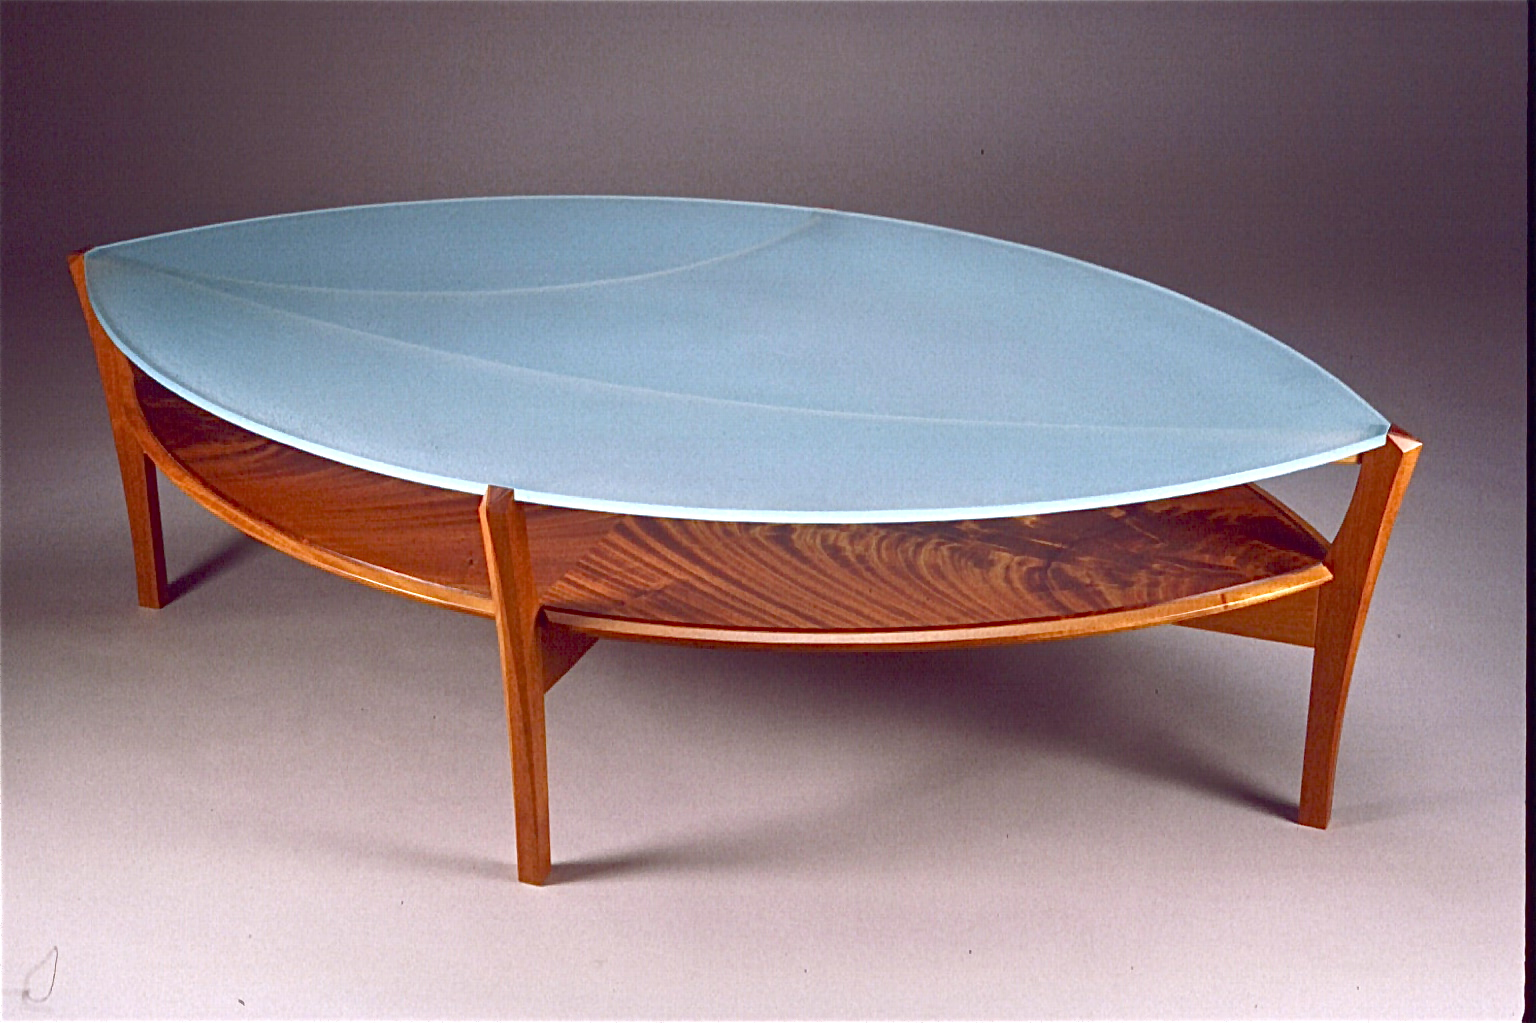 Coffee-Table-With-Glass-Top-You-could-sit-down-and-relax-on-Rustic-meets-elegant-in-this-spherical (Image 10 of 10)